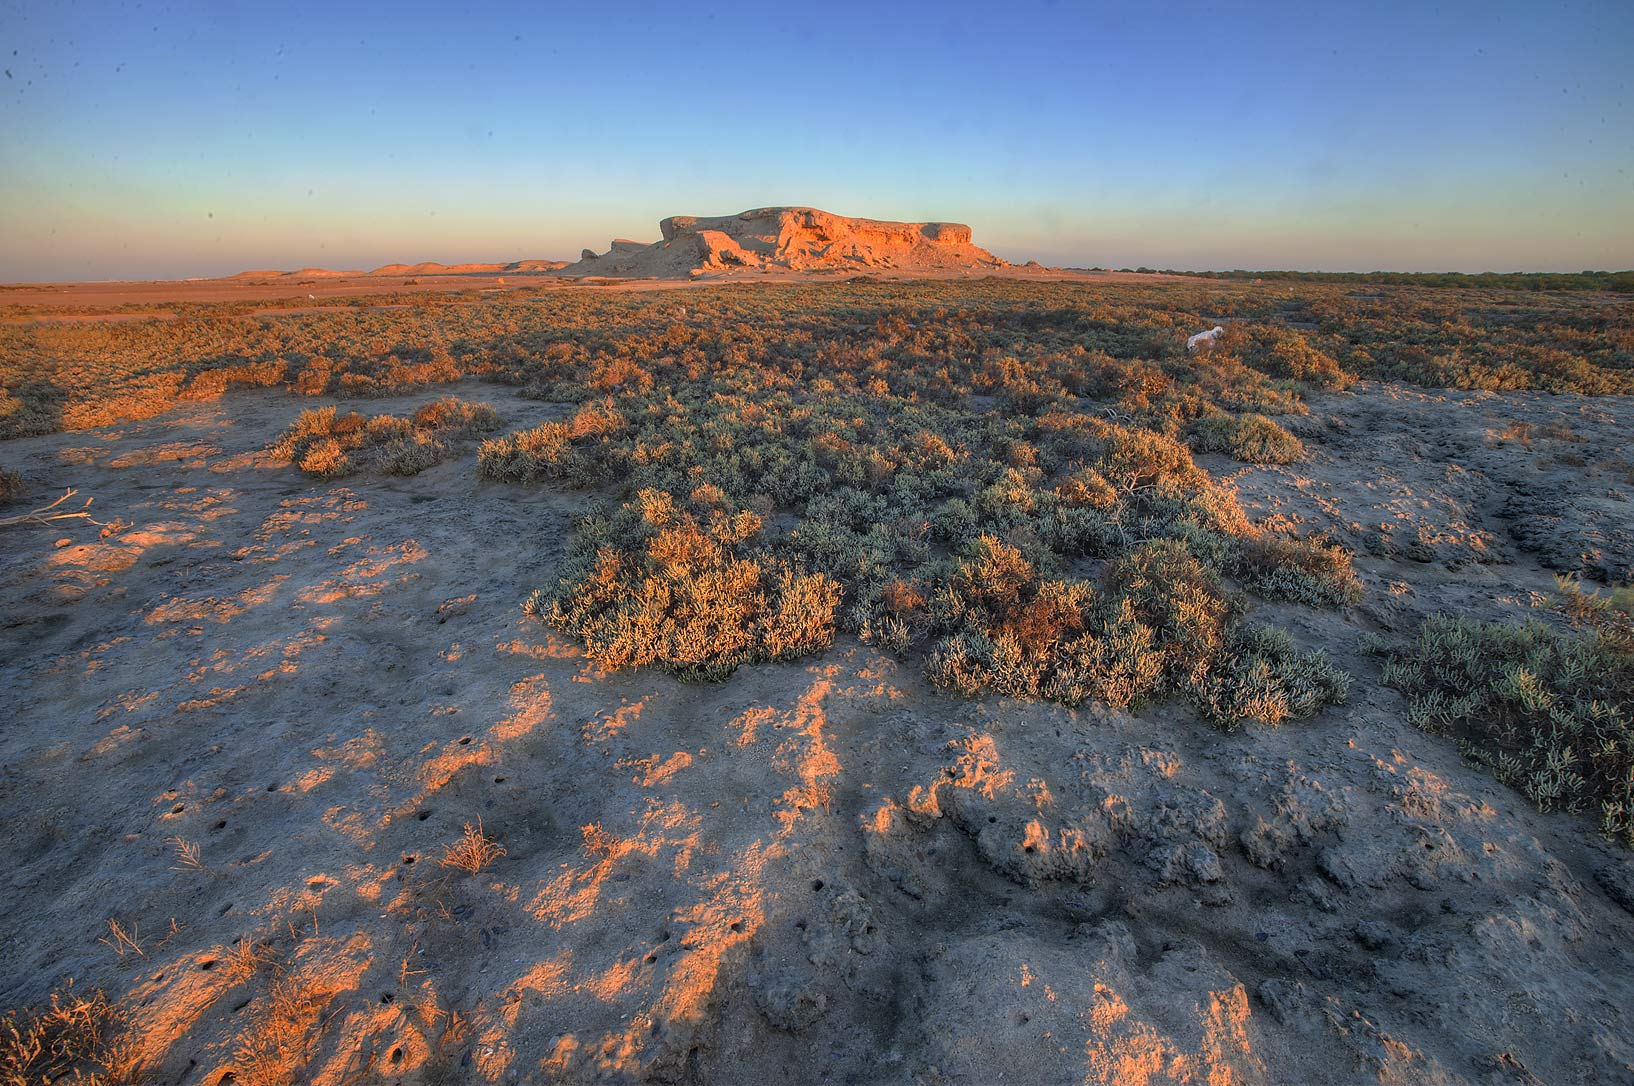 Salt marsh and cliffs of Purple Island (Jazirat Bin Ghanim) at sunrise. Al Khor, Qatar